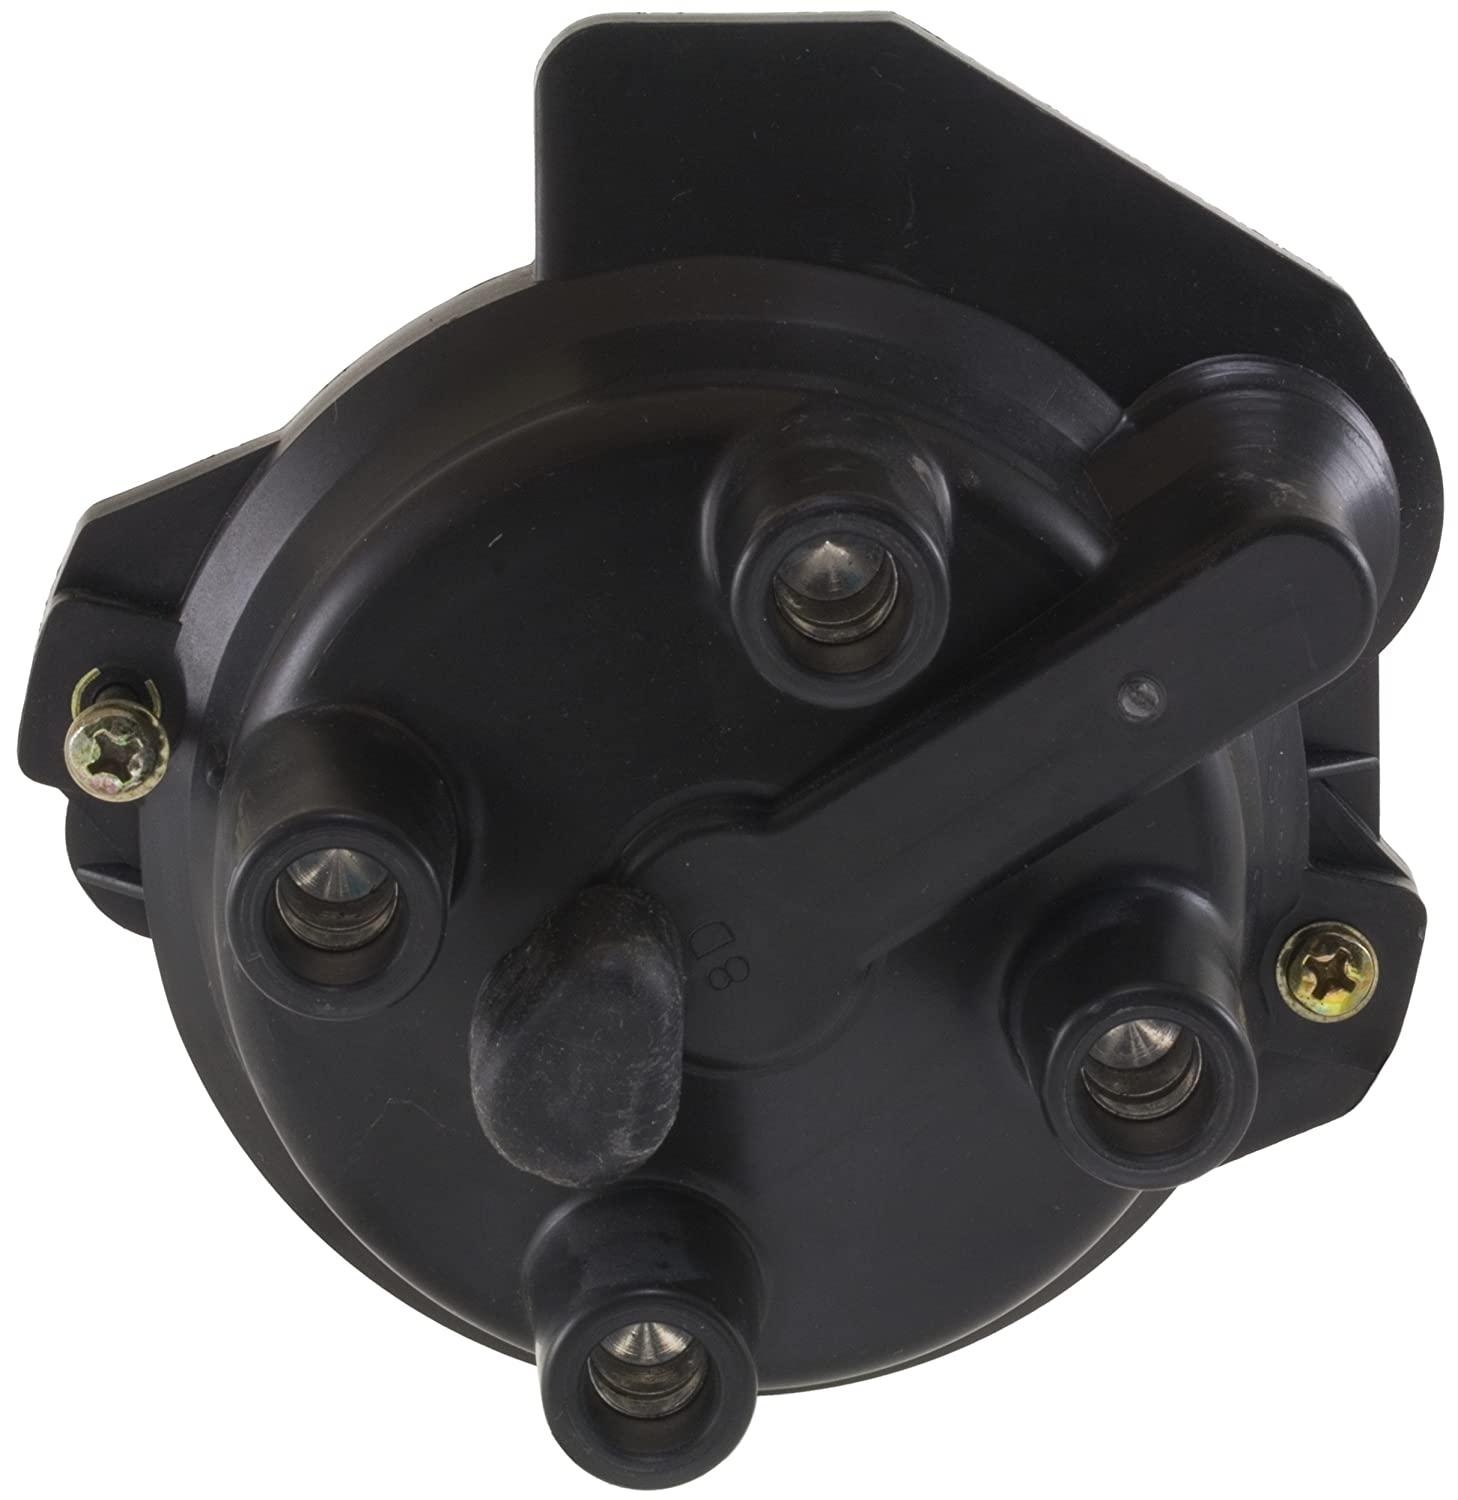 Wells CR2210 Distributor Cap and Rotor Kit